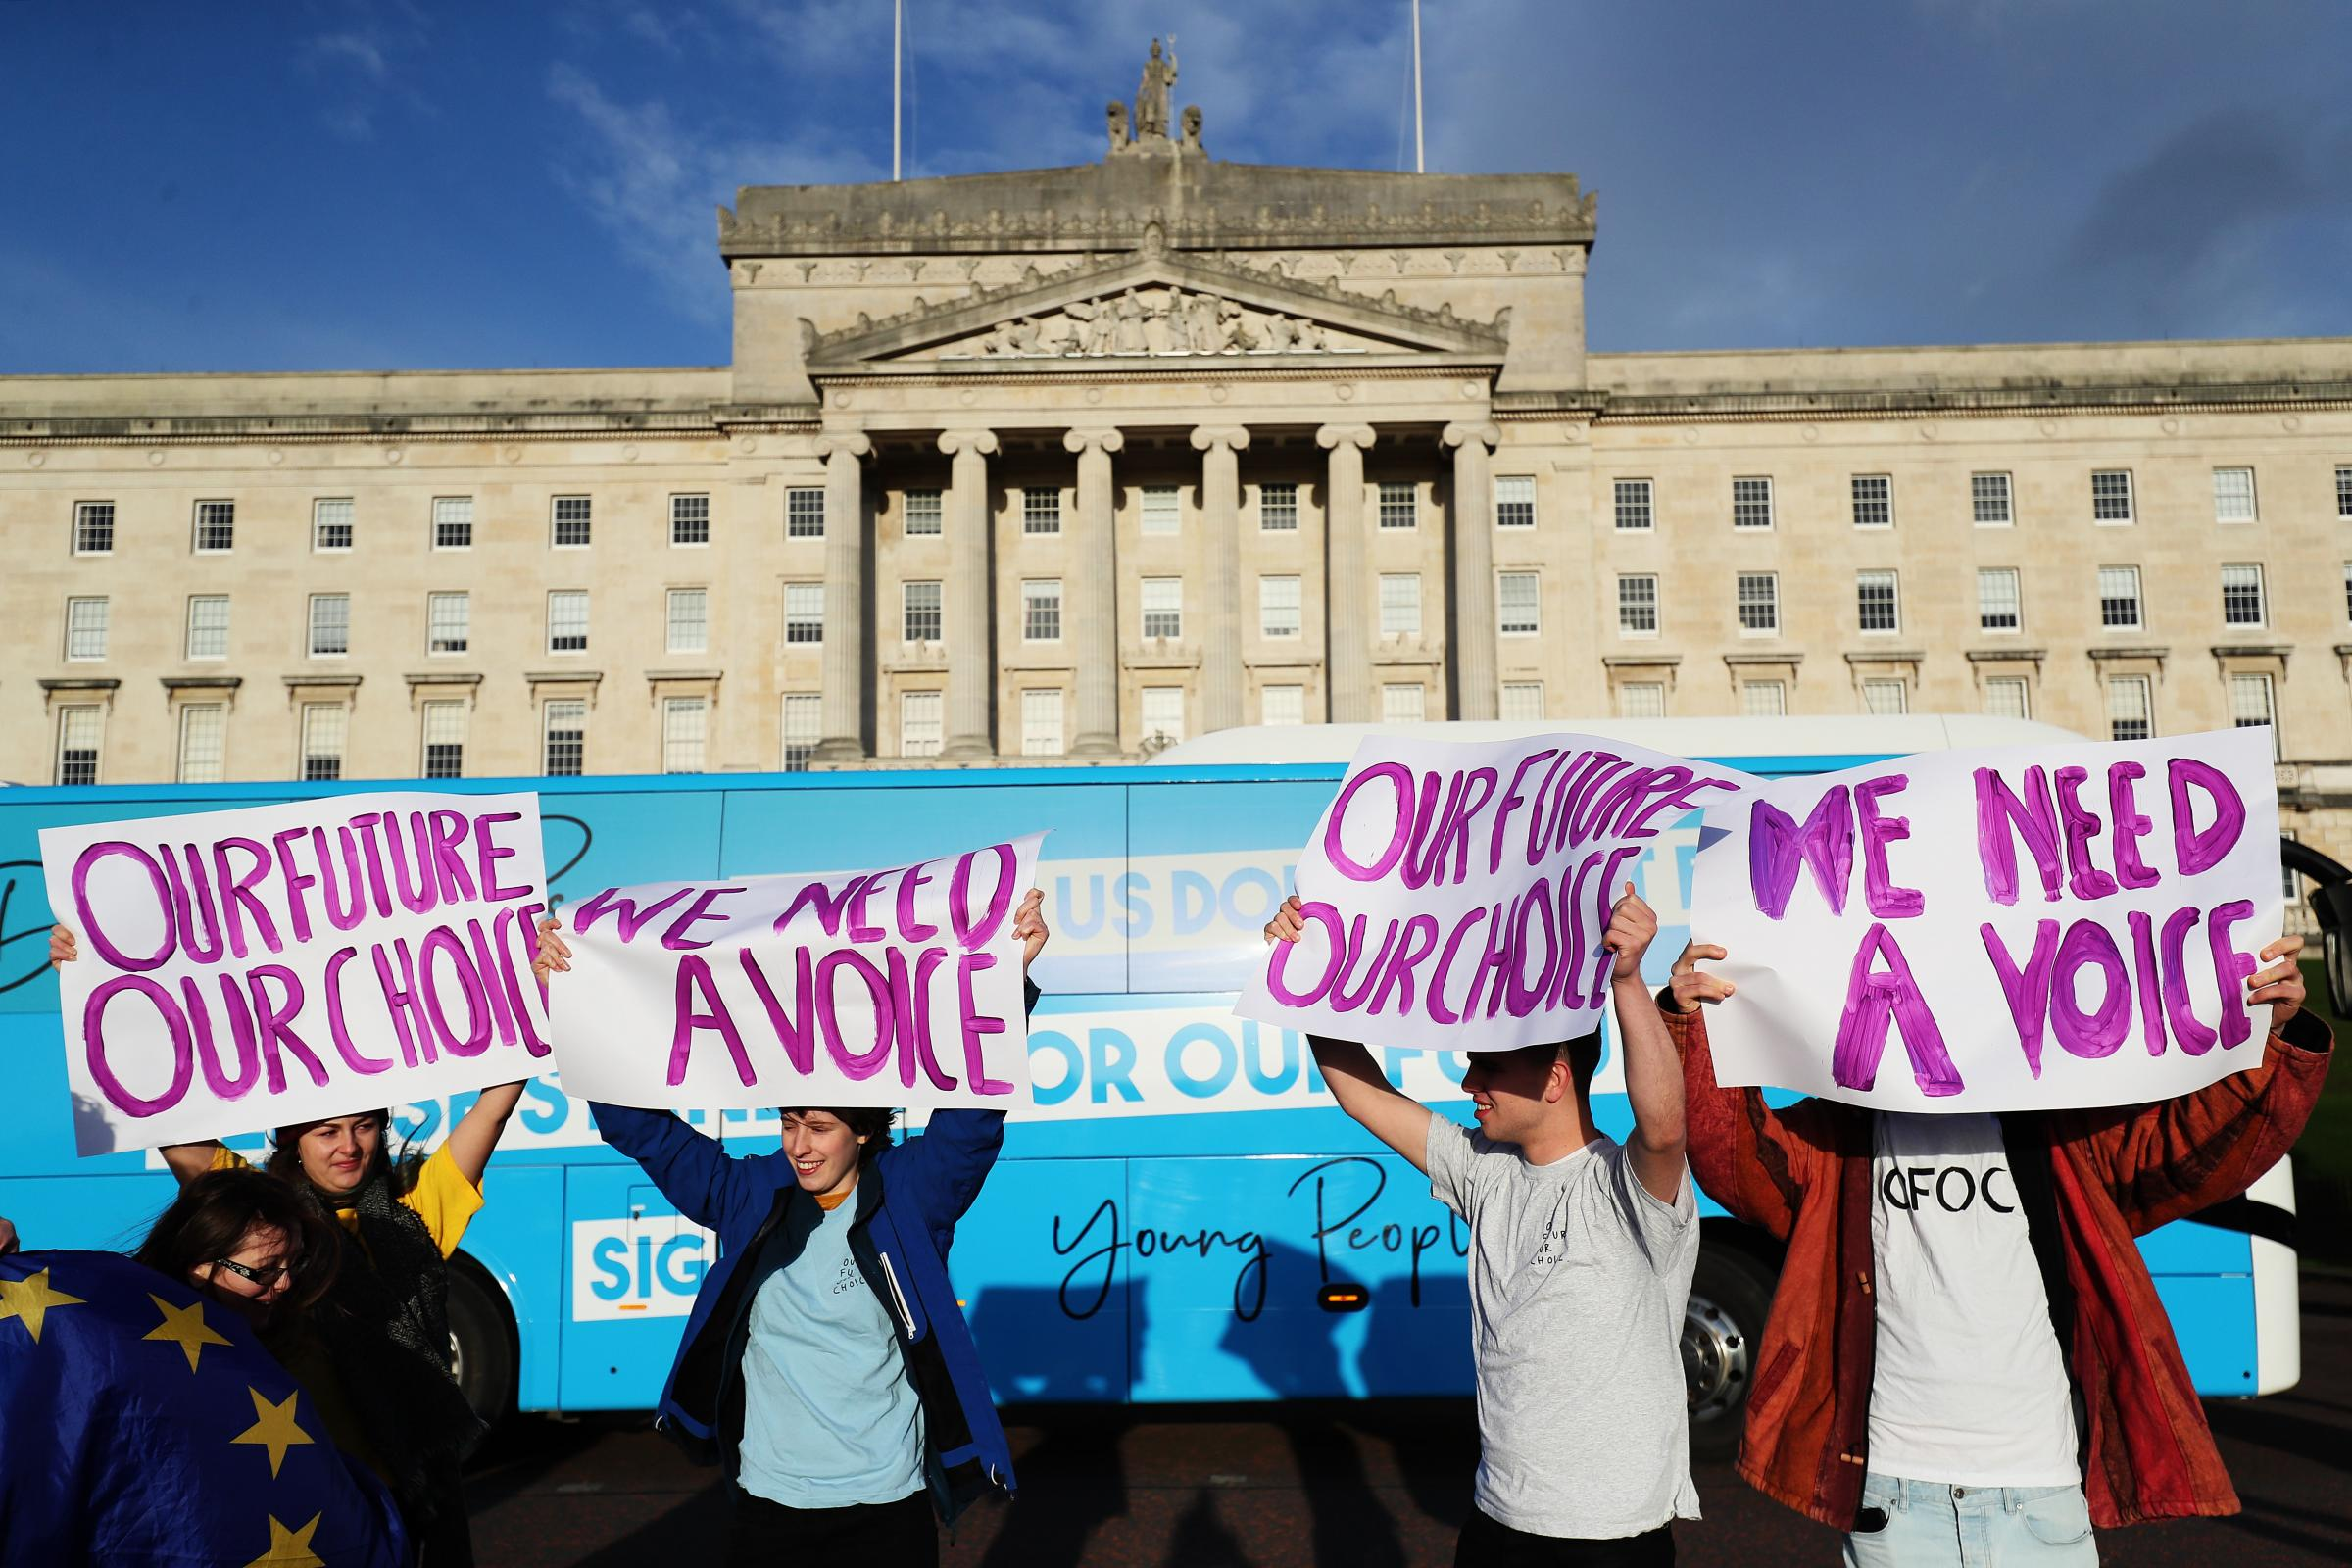 Our Future, Our Choice NI protest at Stormont